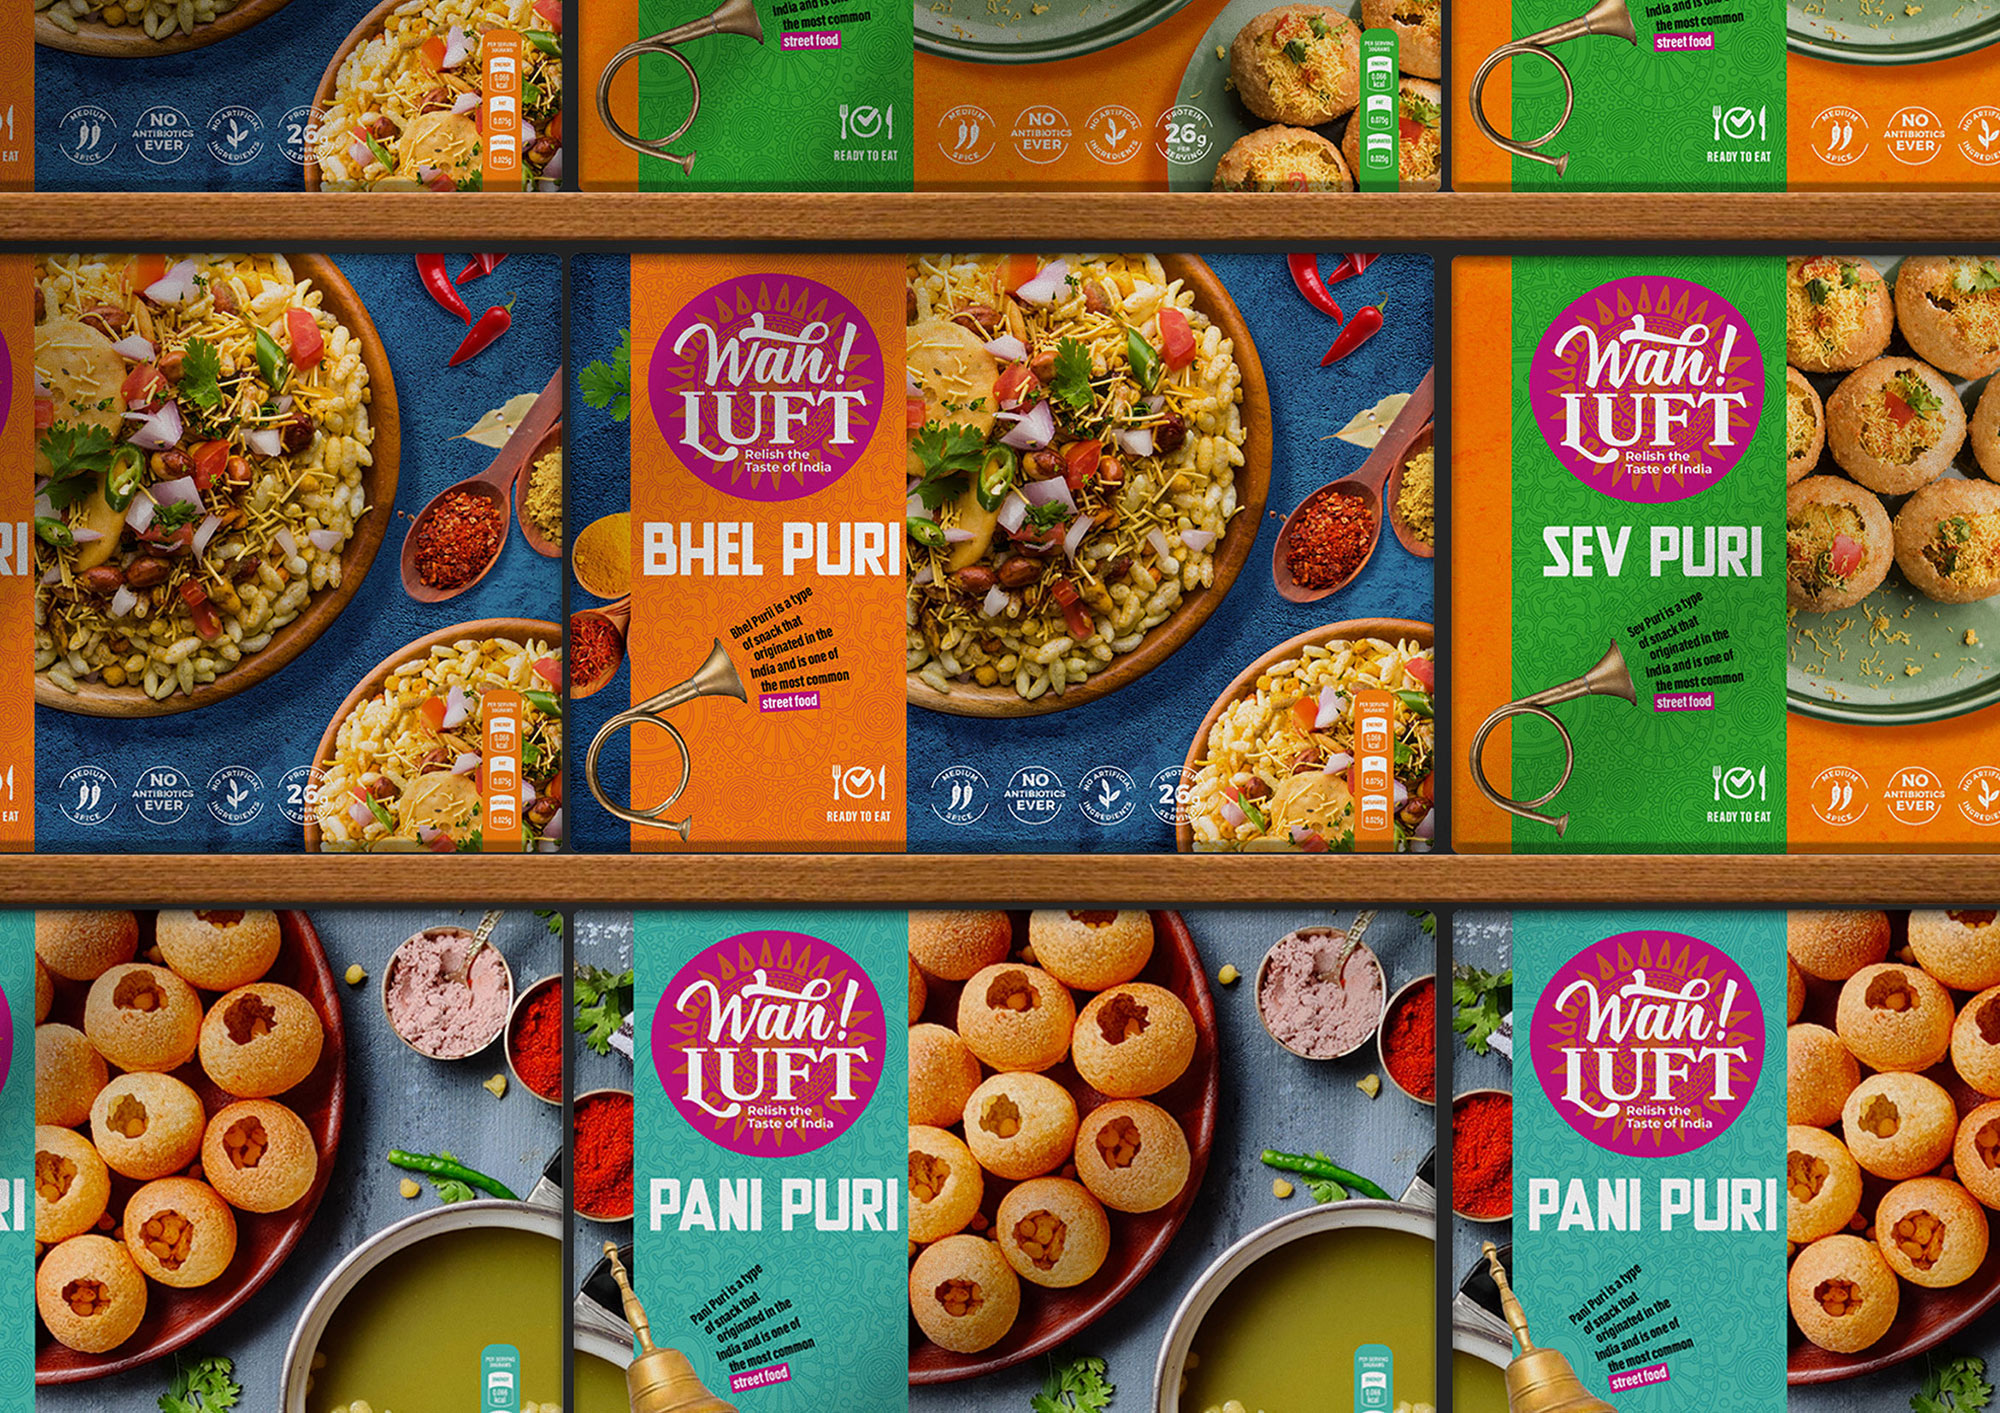 A Non Published Concept Branding Strategy and Design for Wahluft by Brand Visual Language